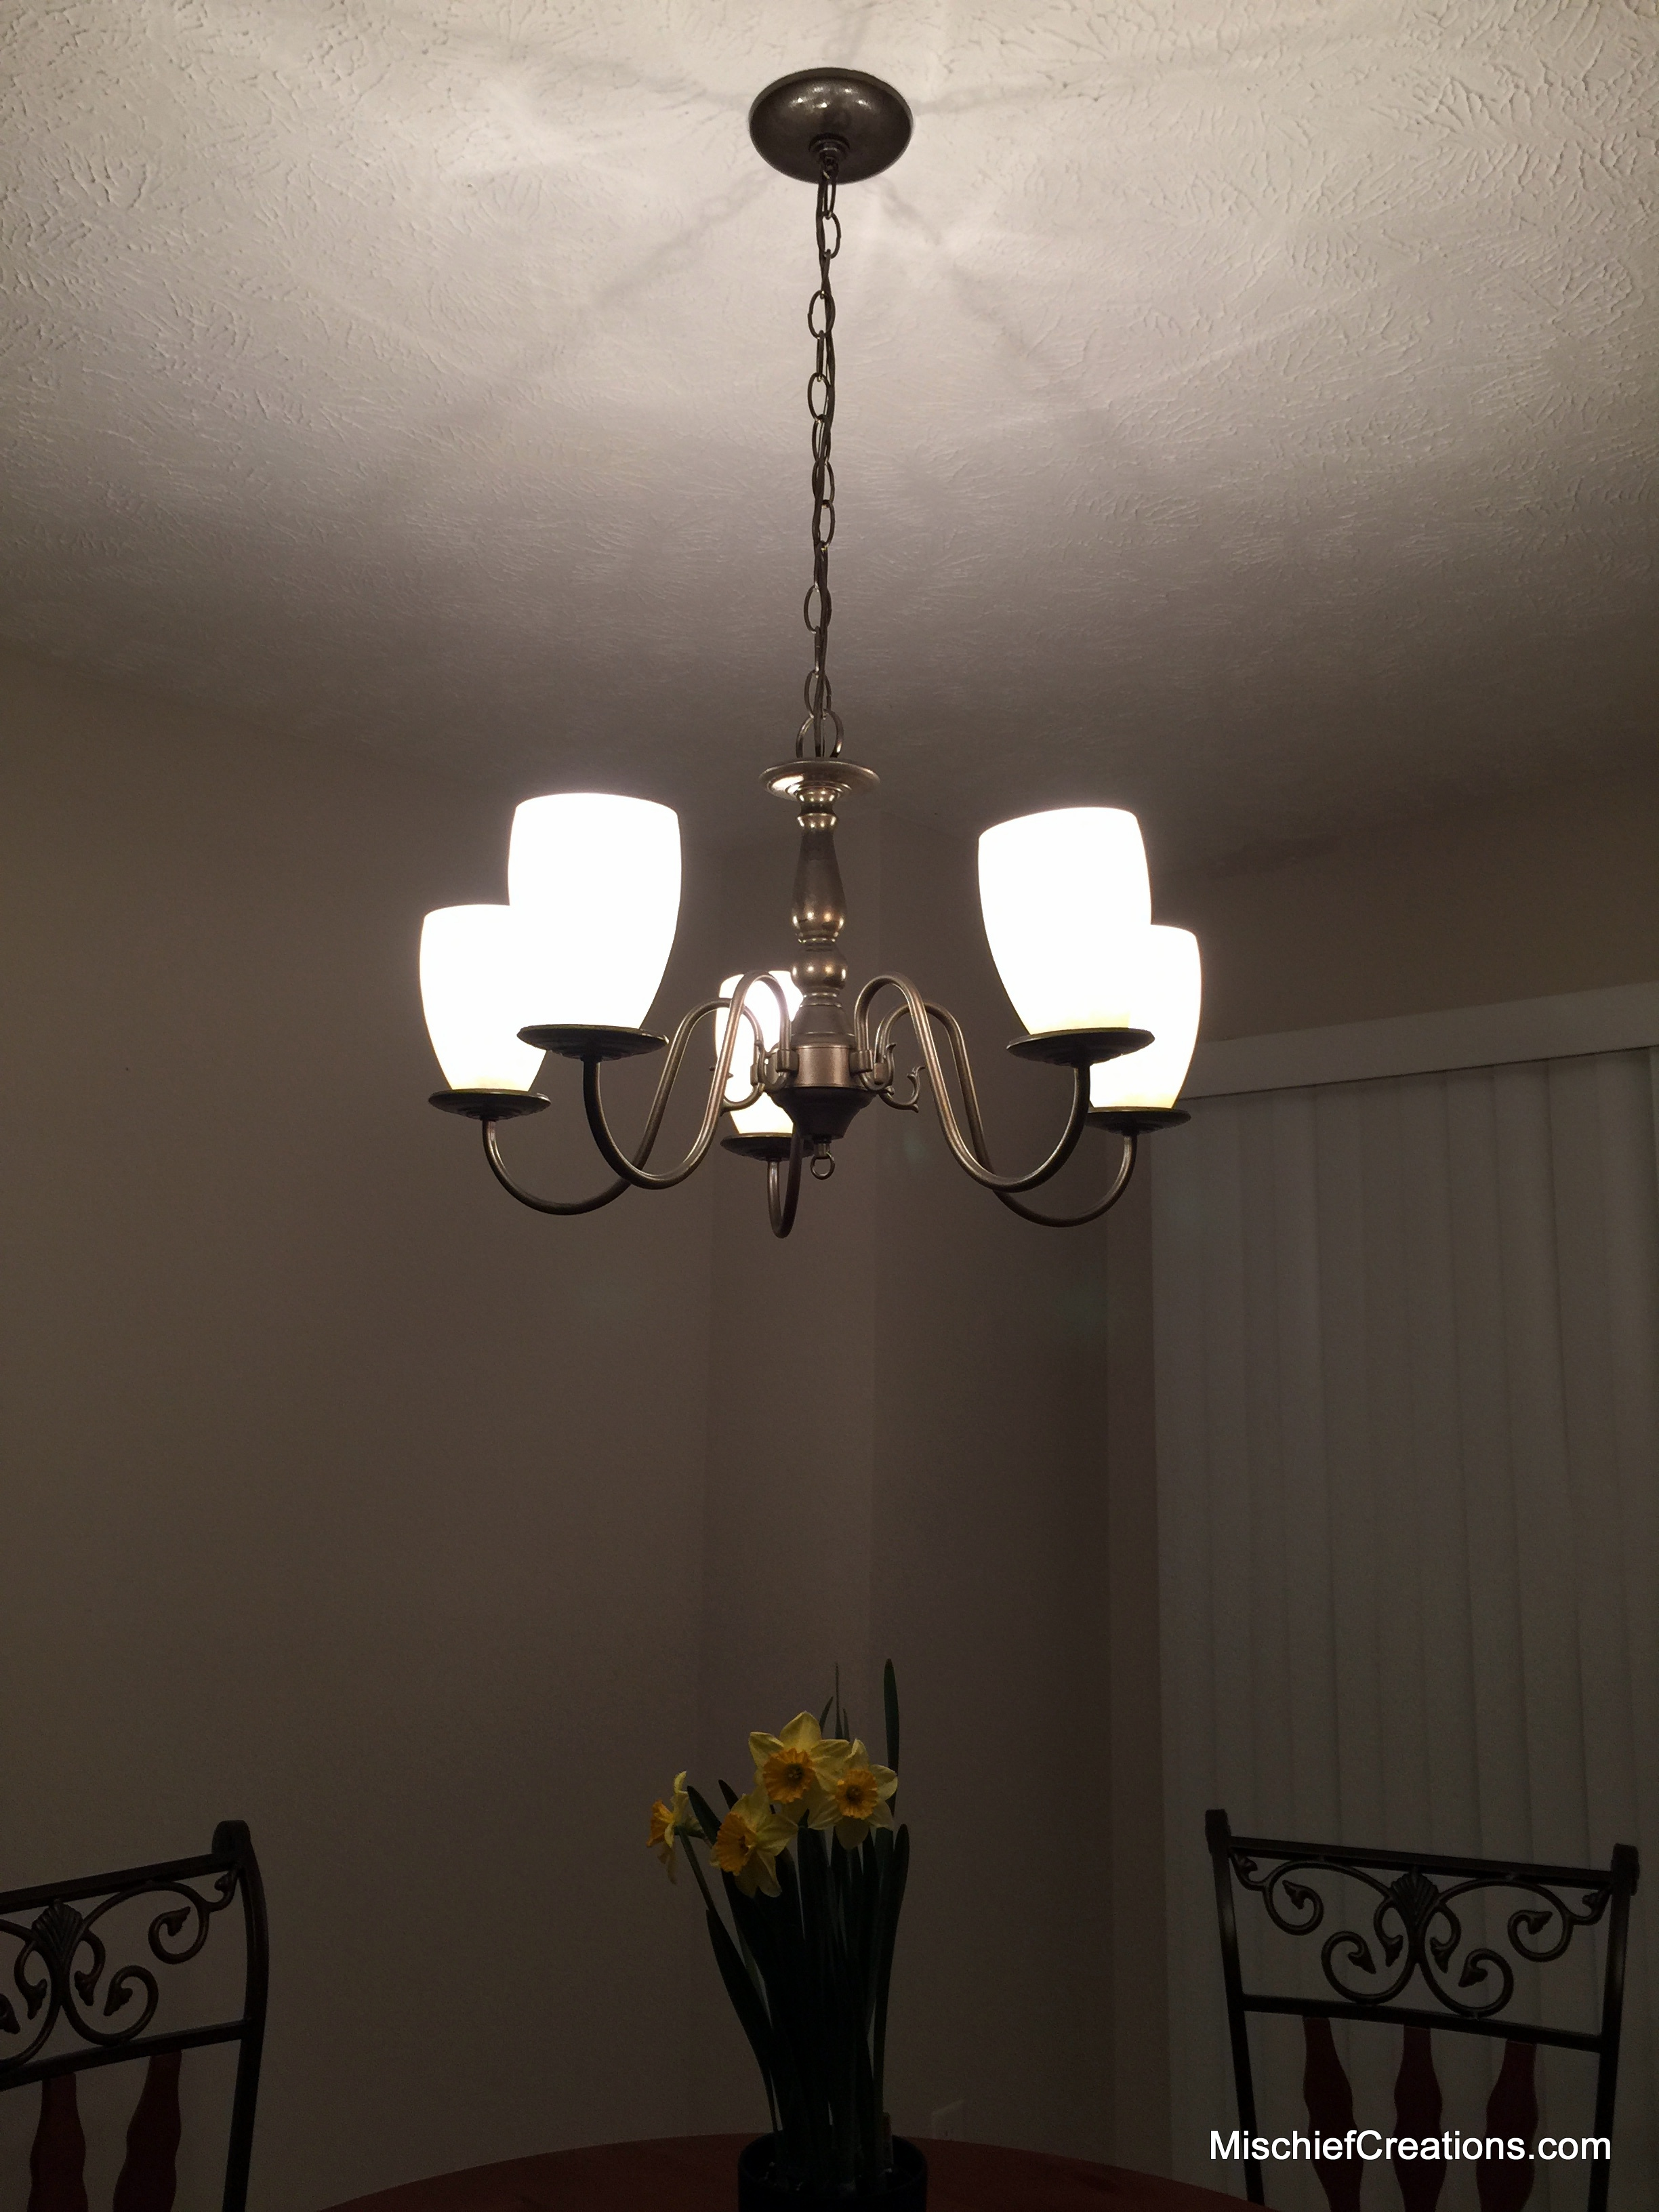 The ugly brass chandelier makeover diy lighted after spray paint brass chandelier makeover aloadofball Image collections